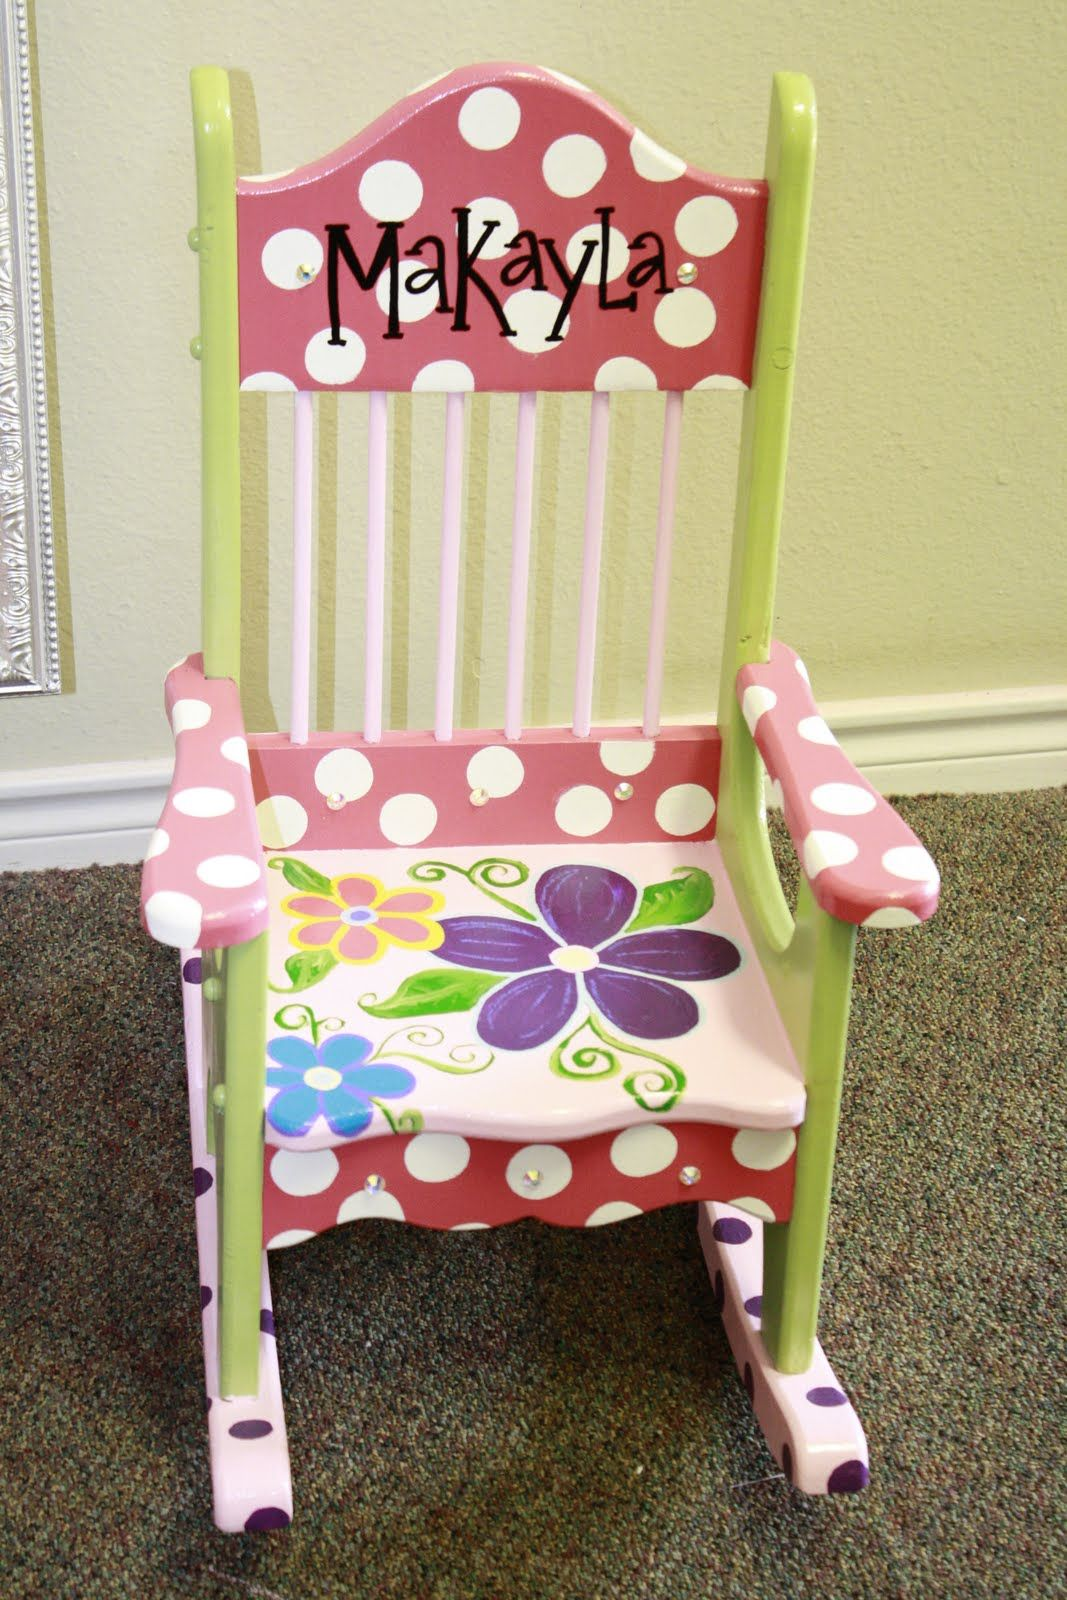 Awesome Cute Chair For The Home Painted Rocking Chairs Painted Pdpeps Interior Chair Design Pdpepsorg